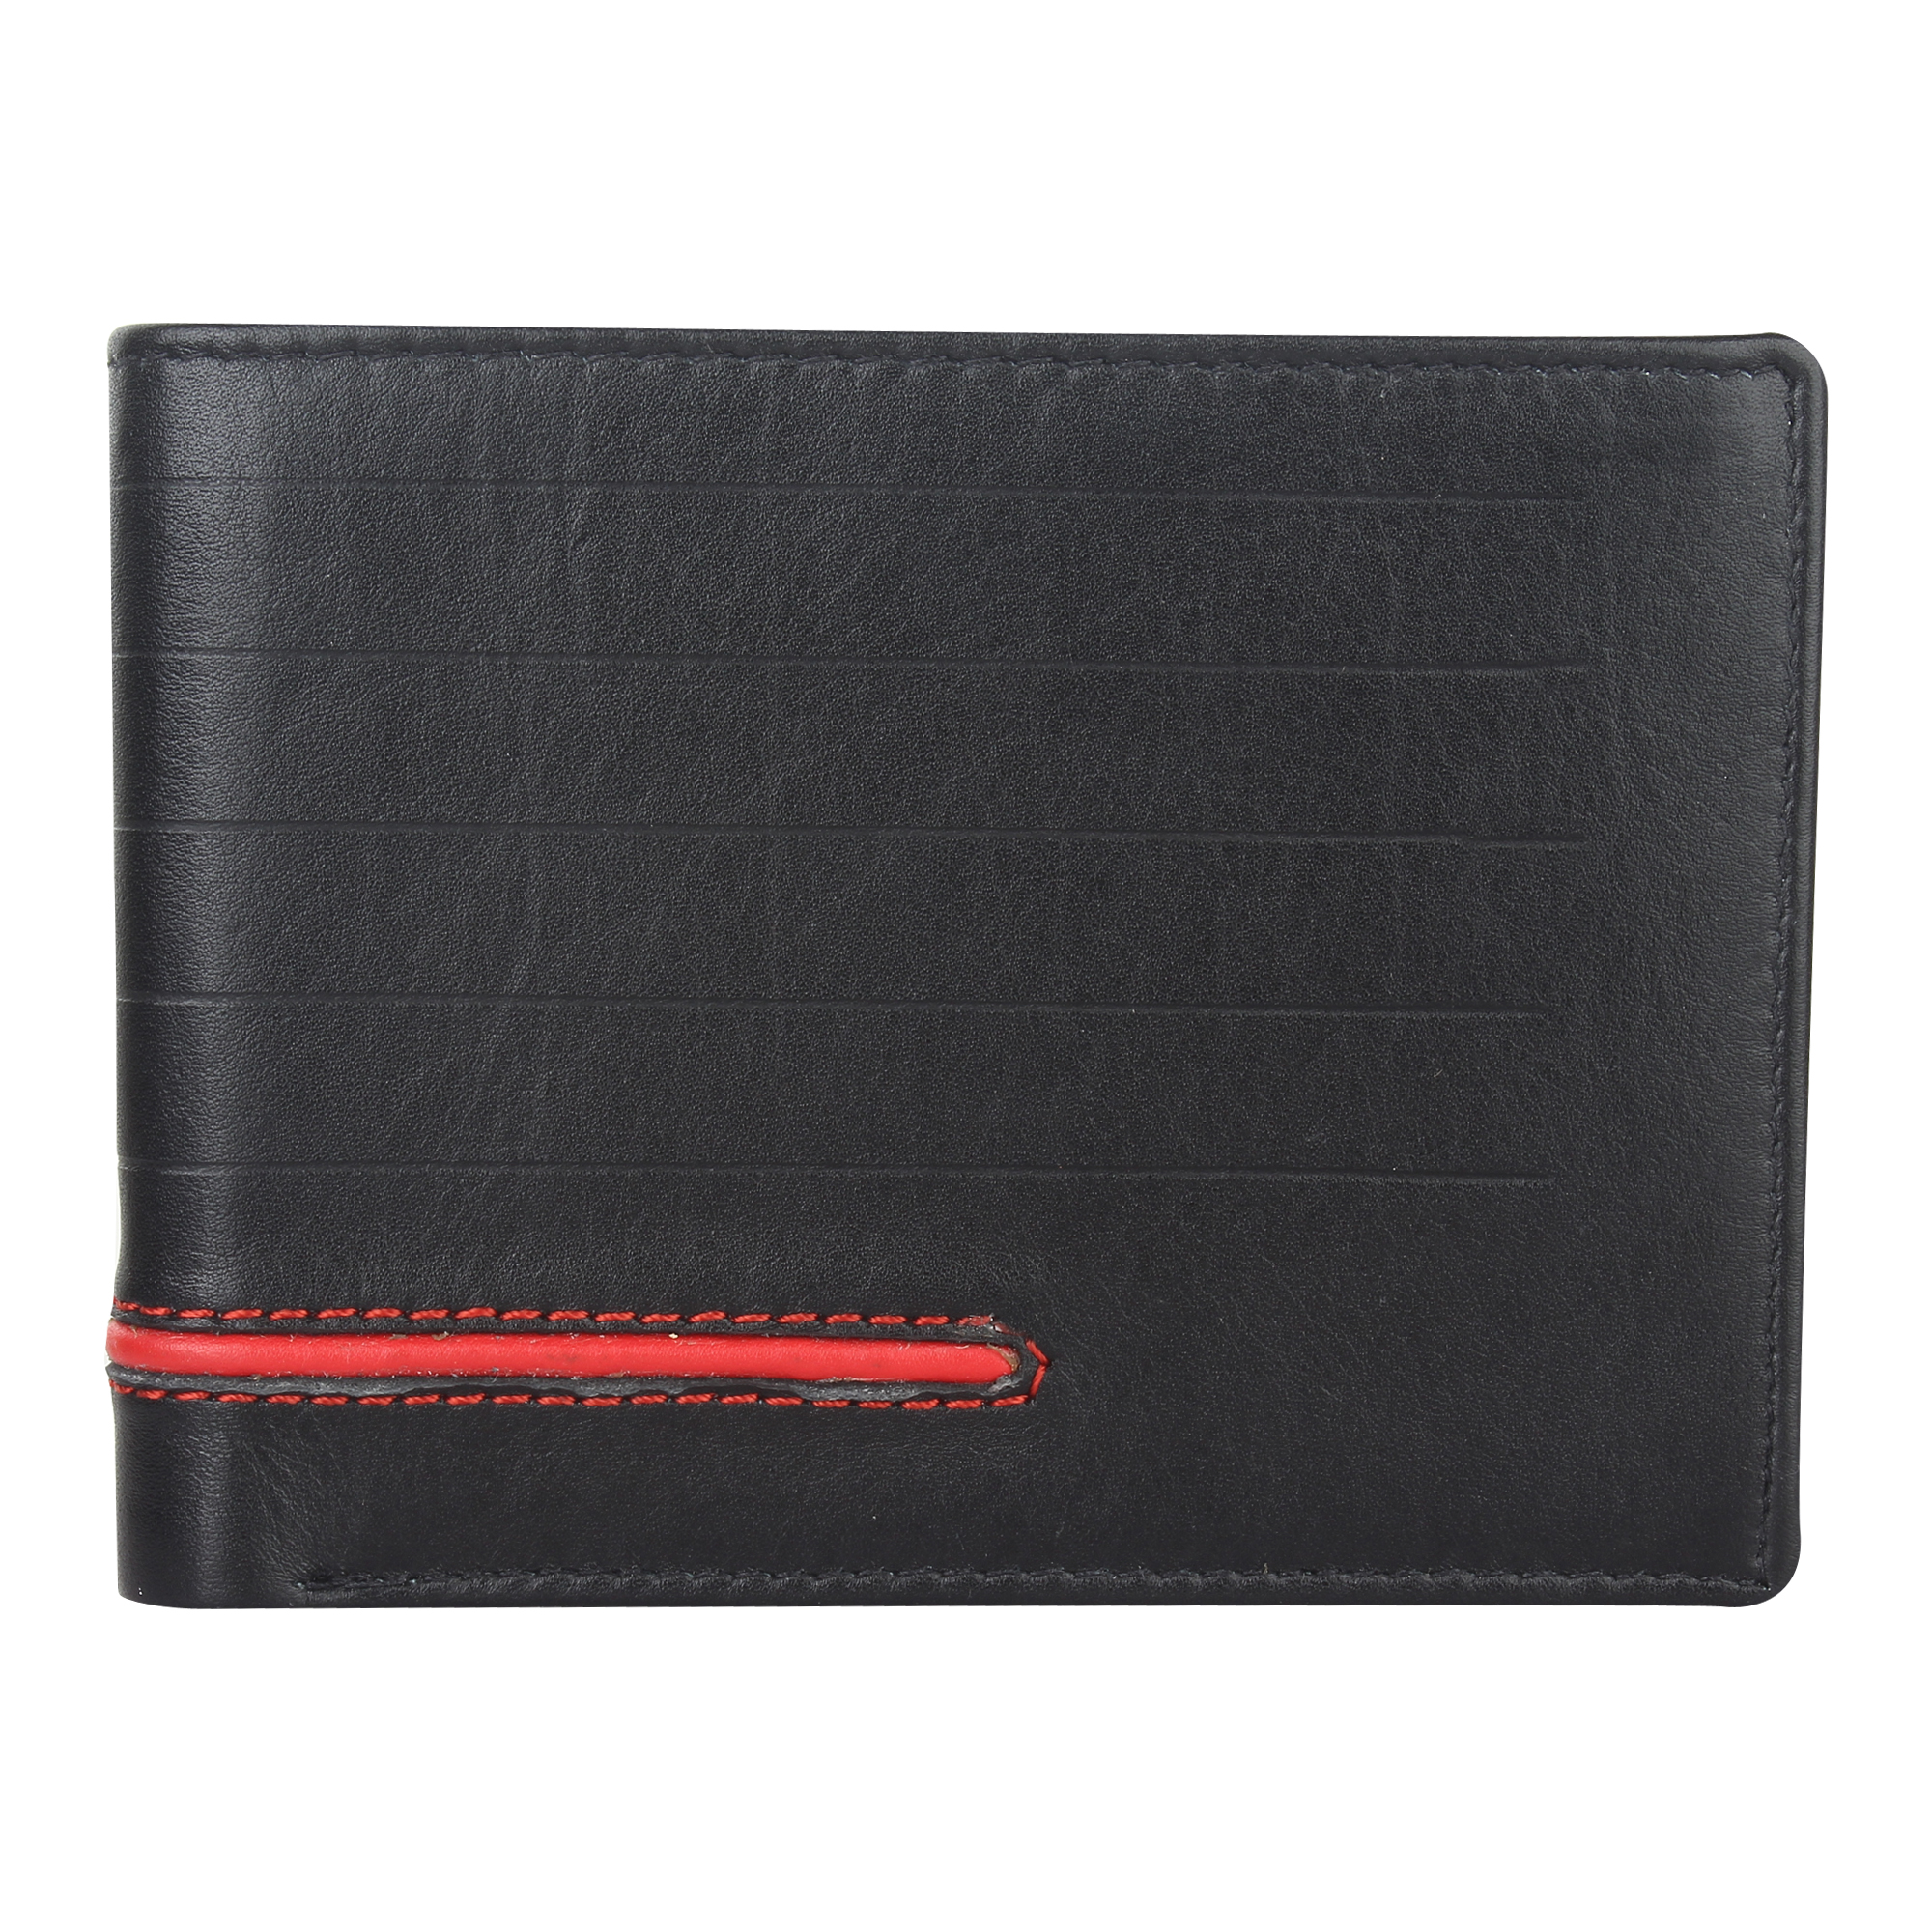 leather wallet manufactures in Delhi